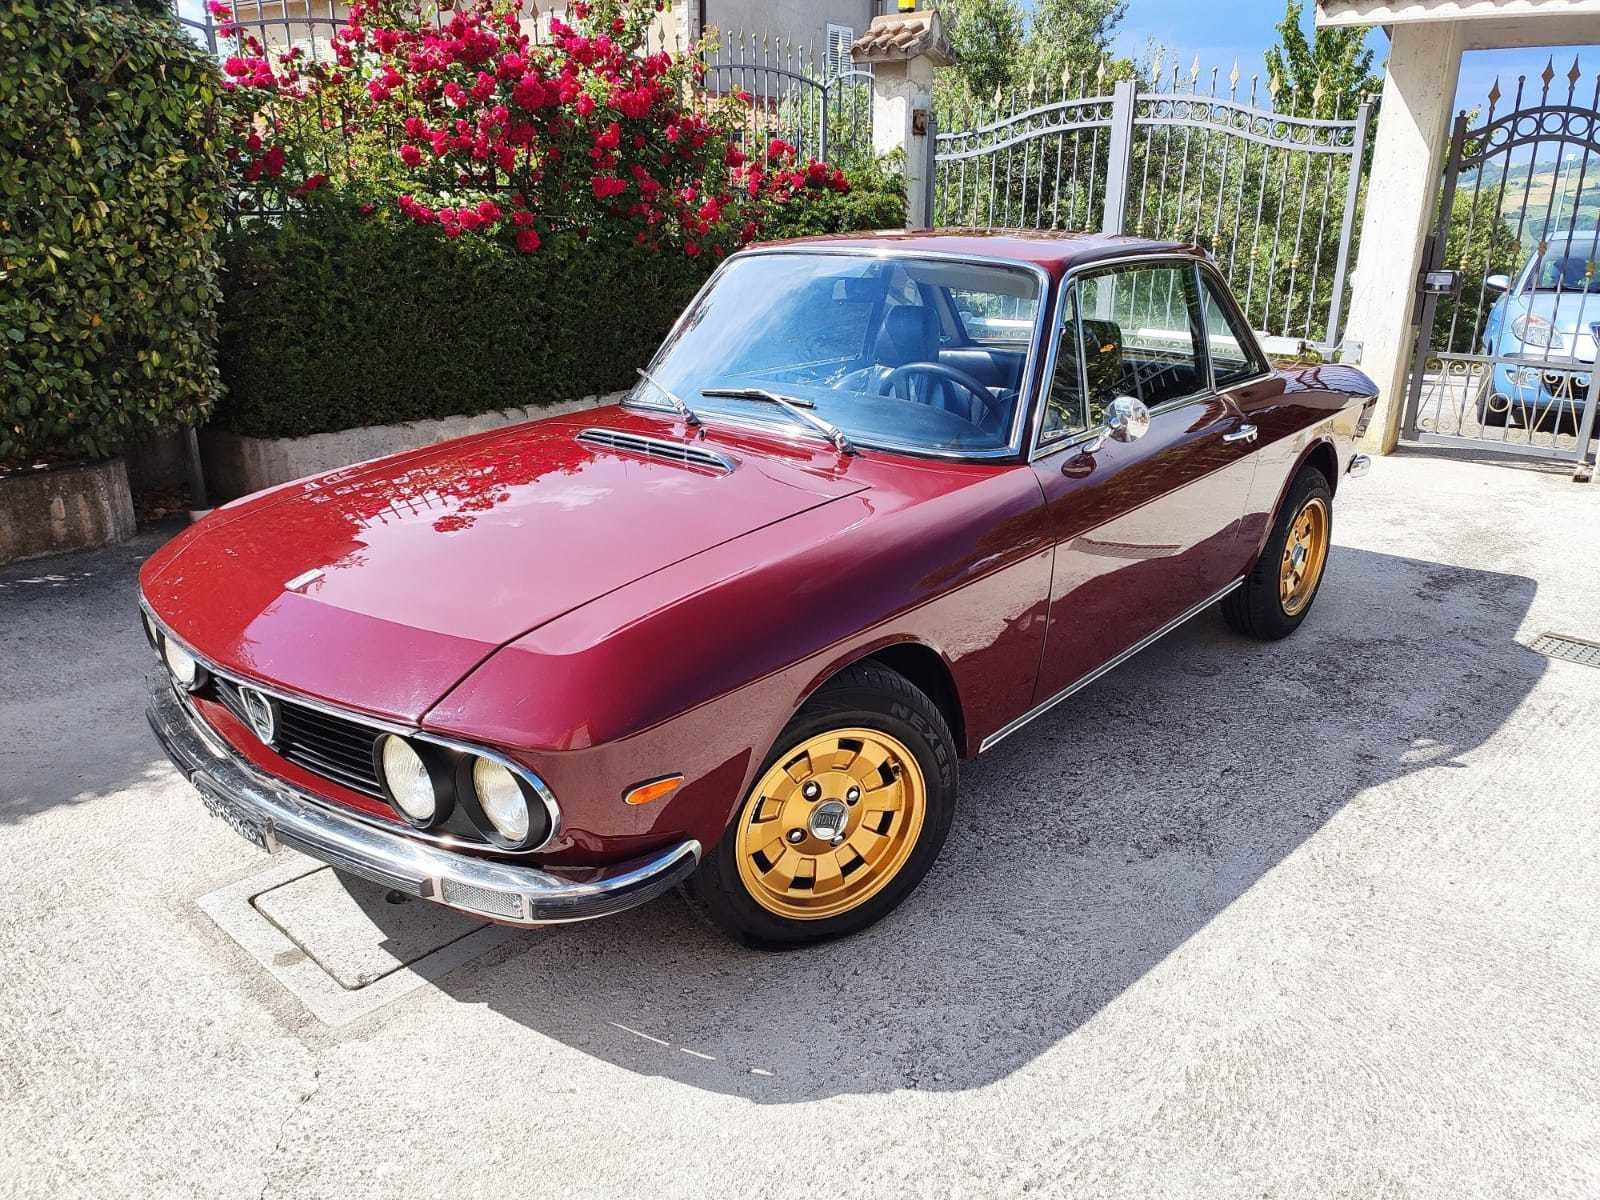 Picture of 1974 Lancia Fulvia 1.3 s Red york